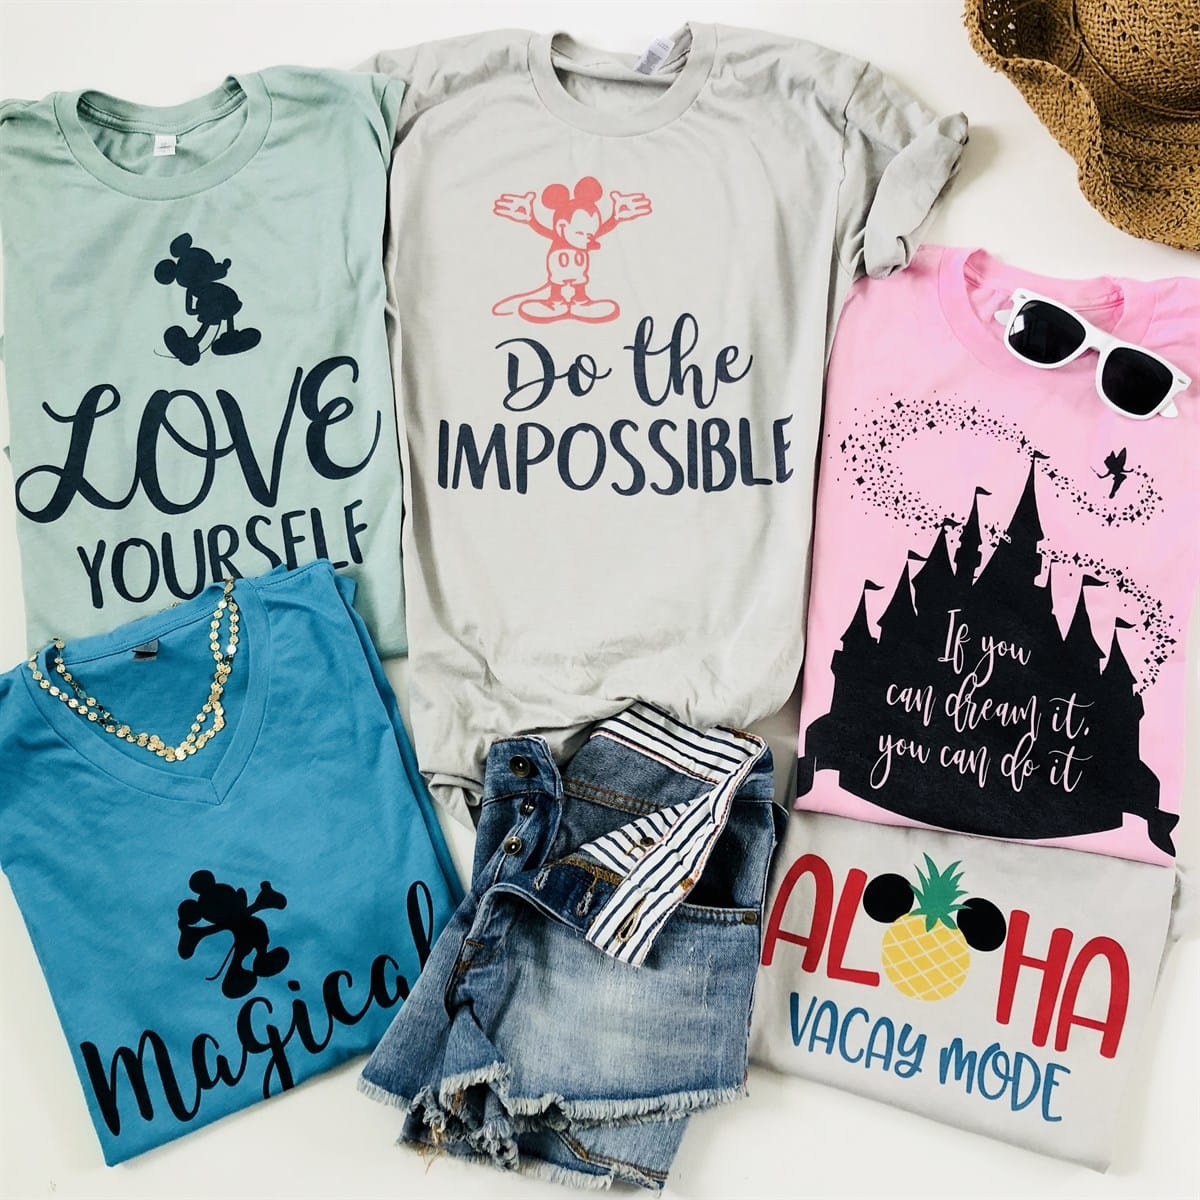 Crazy Awesome Deals on Disney Tees and More! 10